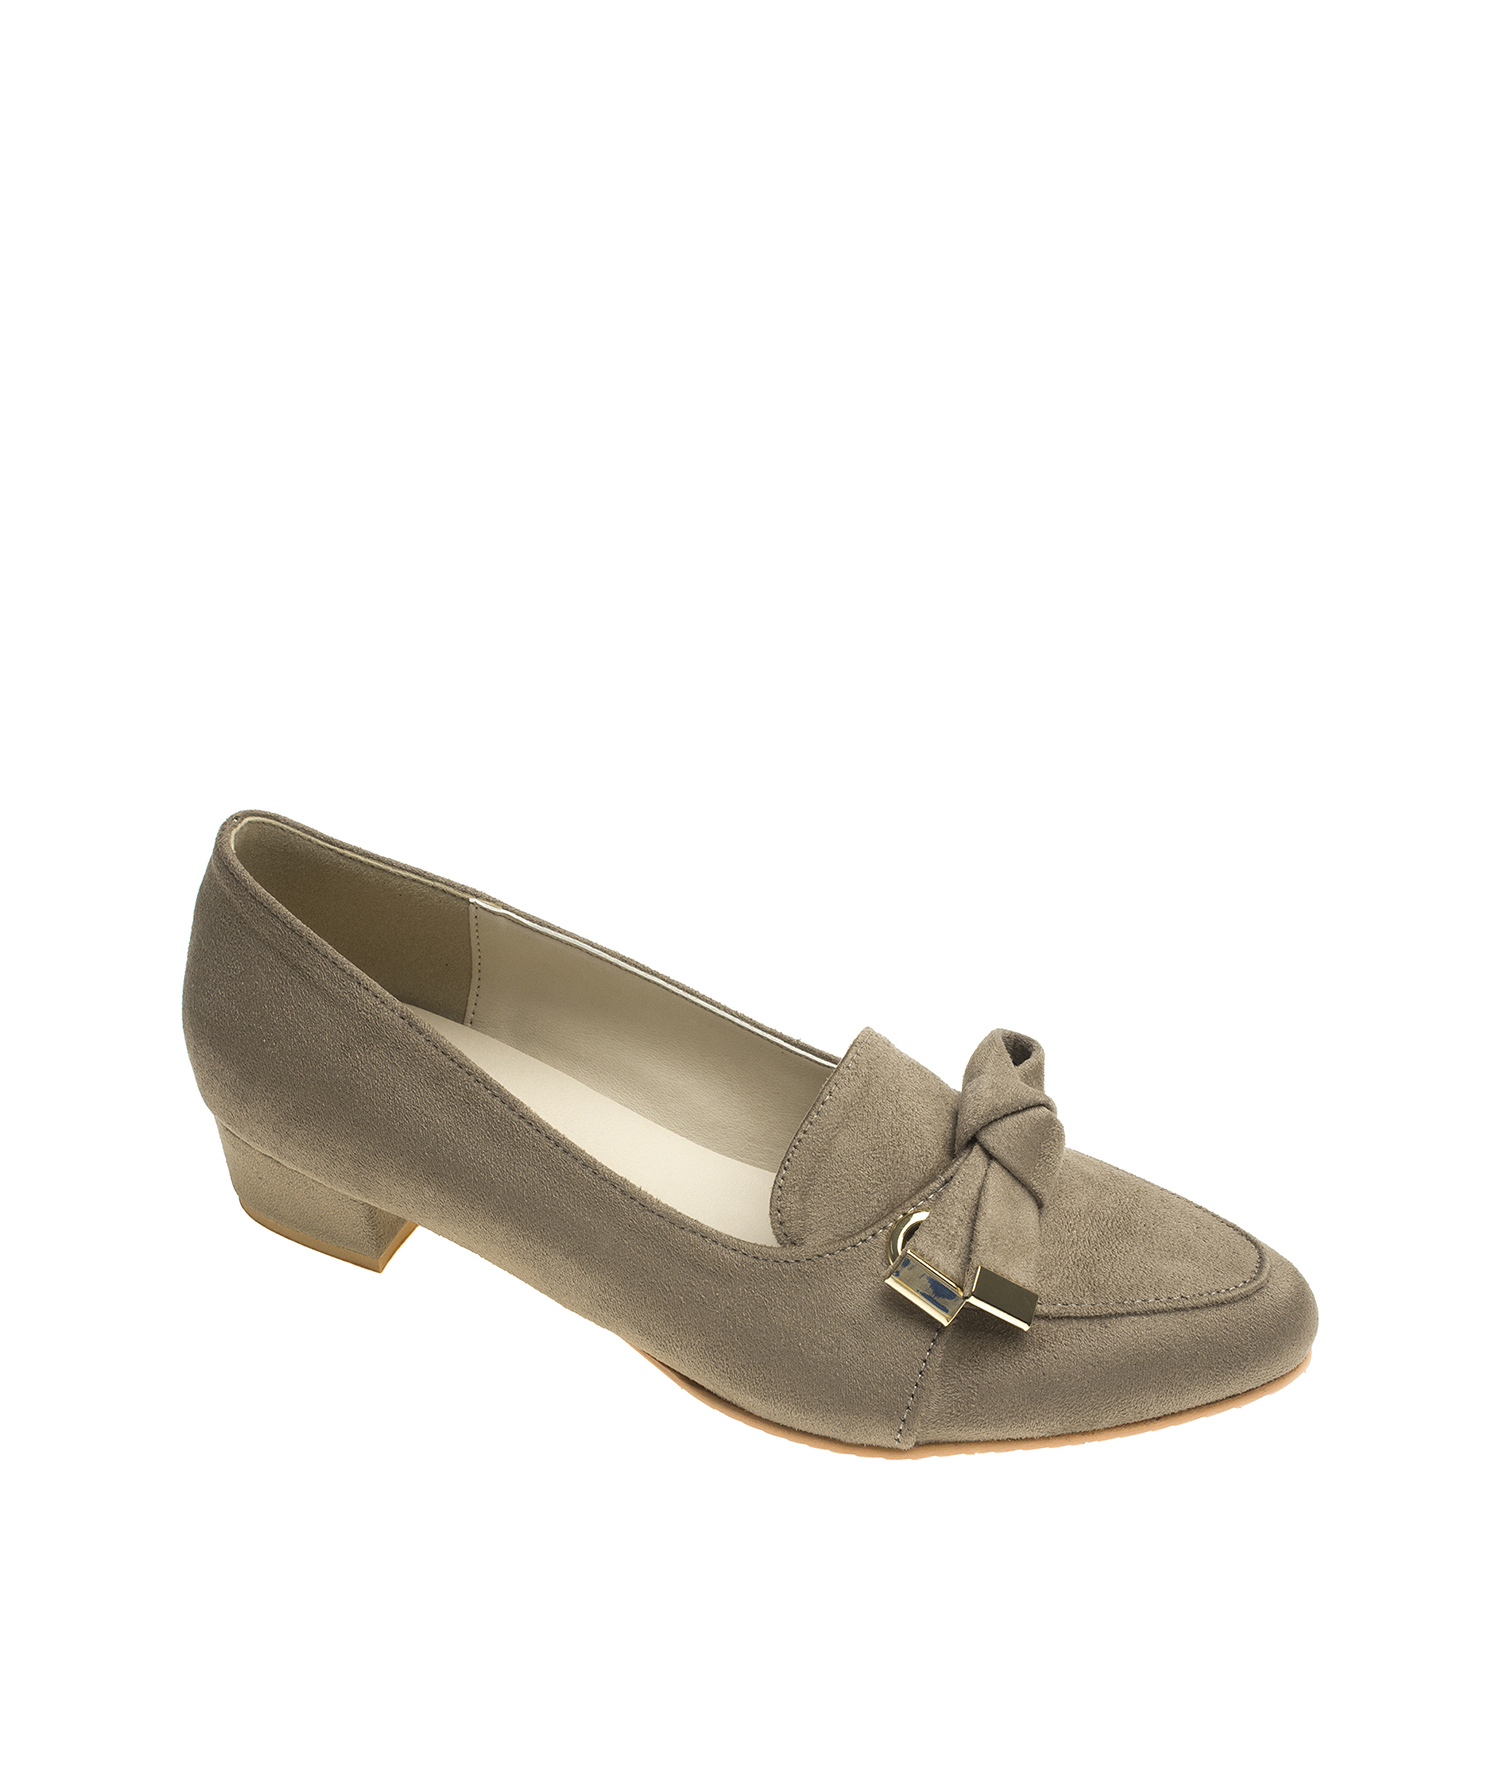 79eab61b5fc2 AnnaKastle Womens Knotted Bow Block Heel Loafer Pumps Beige